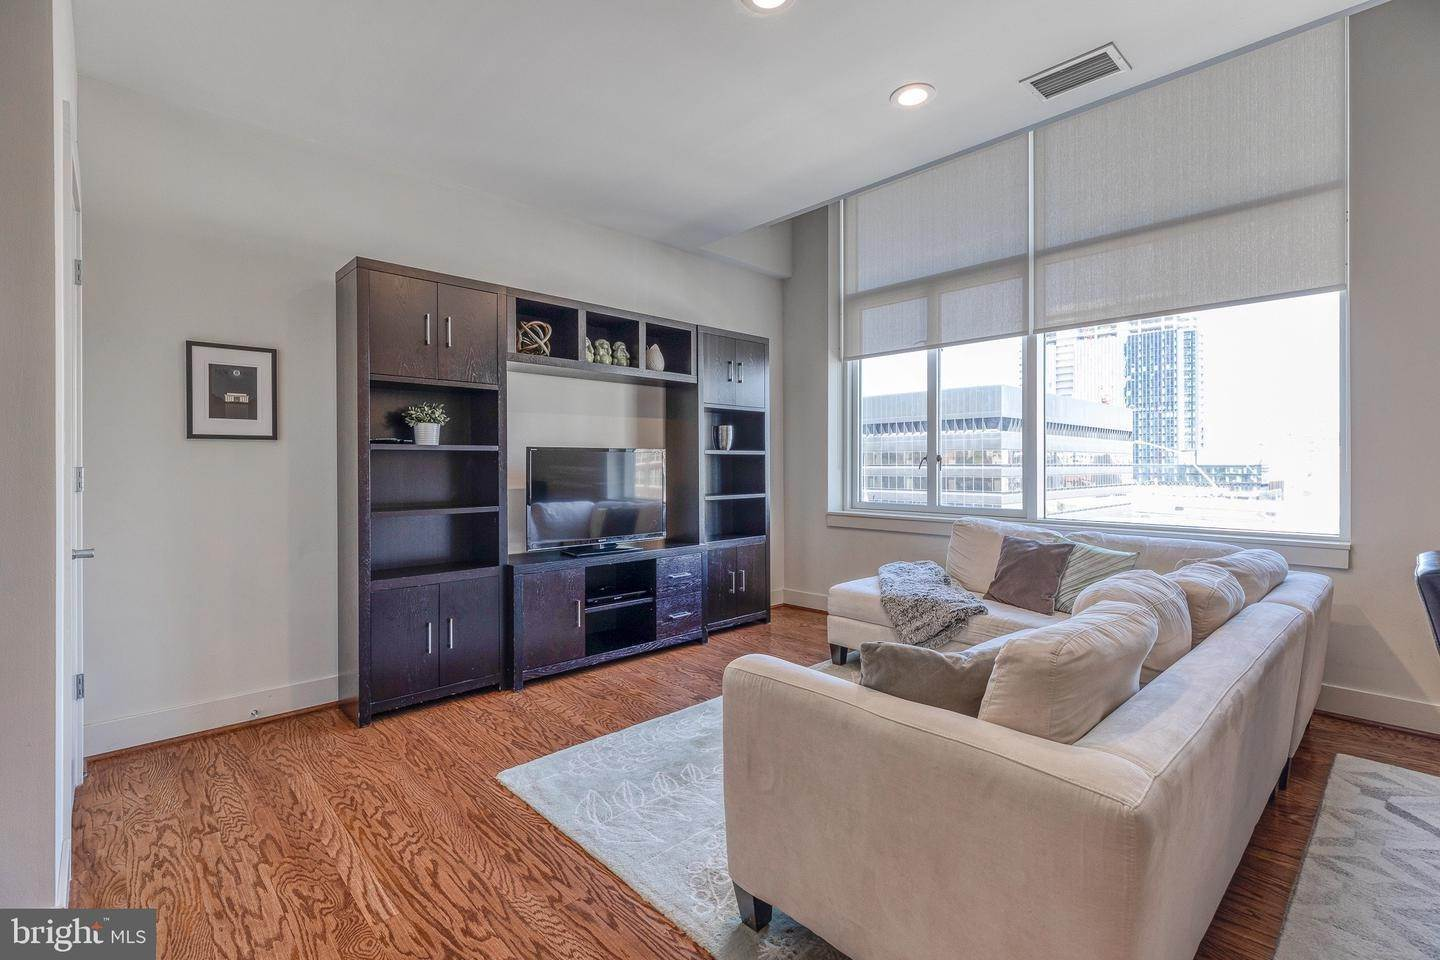 8. Apartments for Sale at 23 S 23RD ST #5B Philadelphia, Pennsylvania 19103 United States